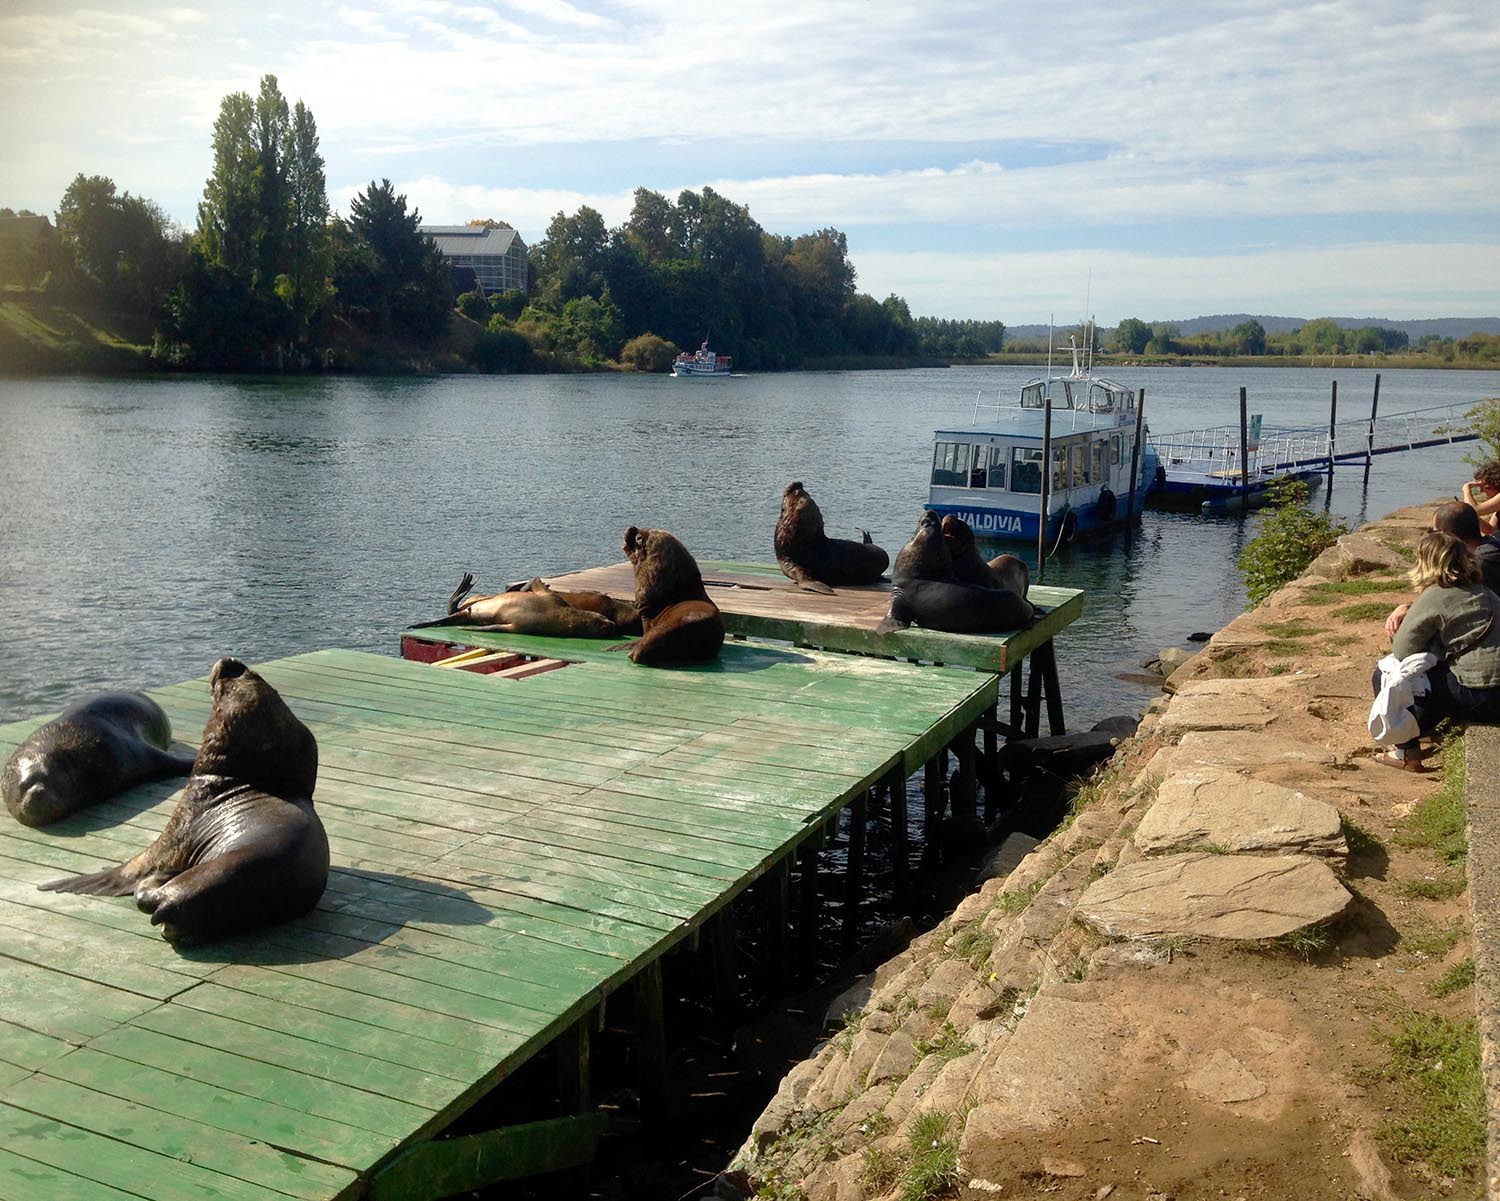 Sea lions sunning themselves on the Barges